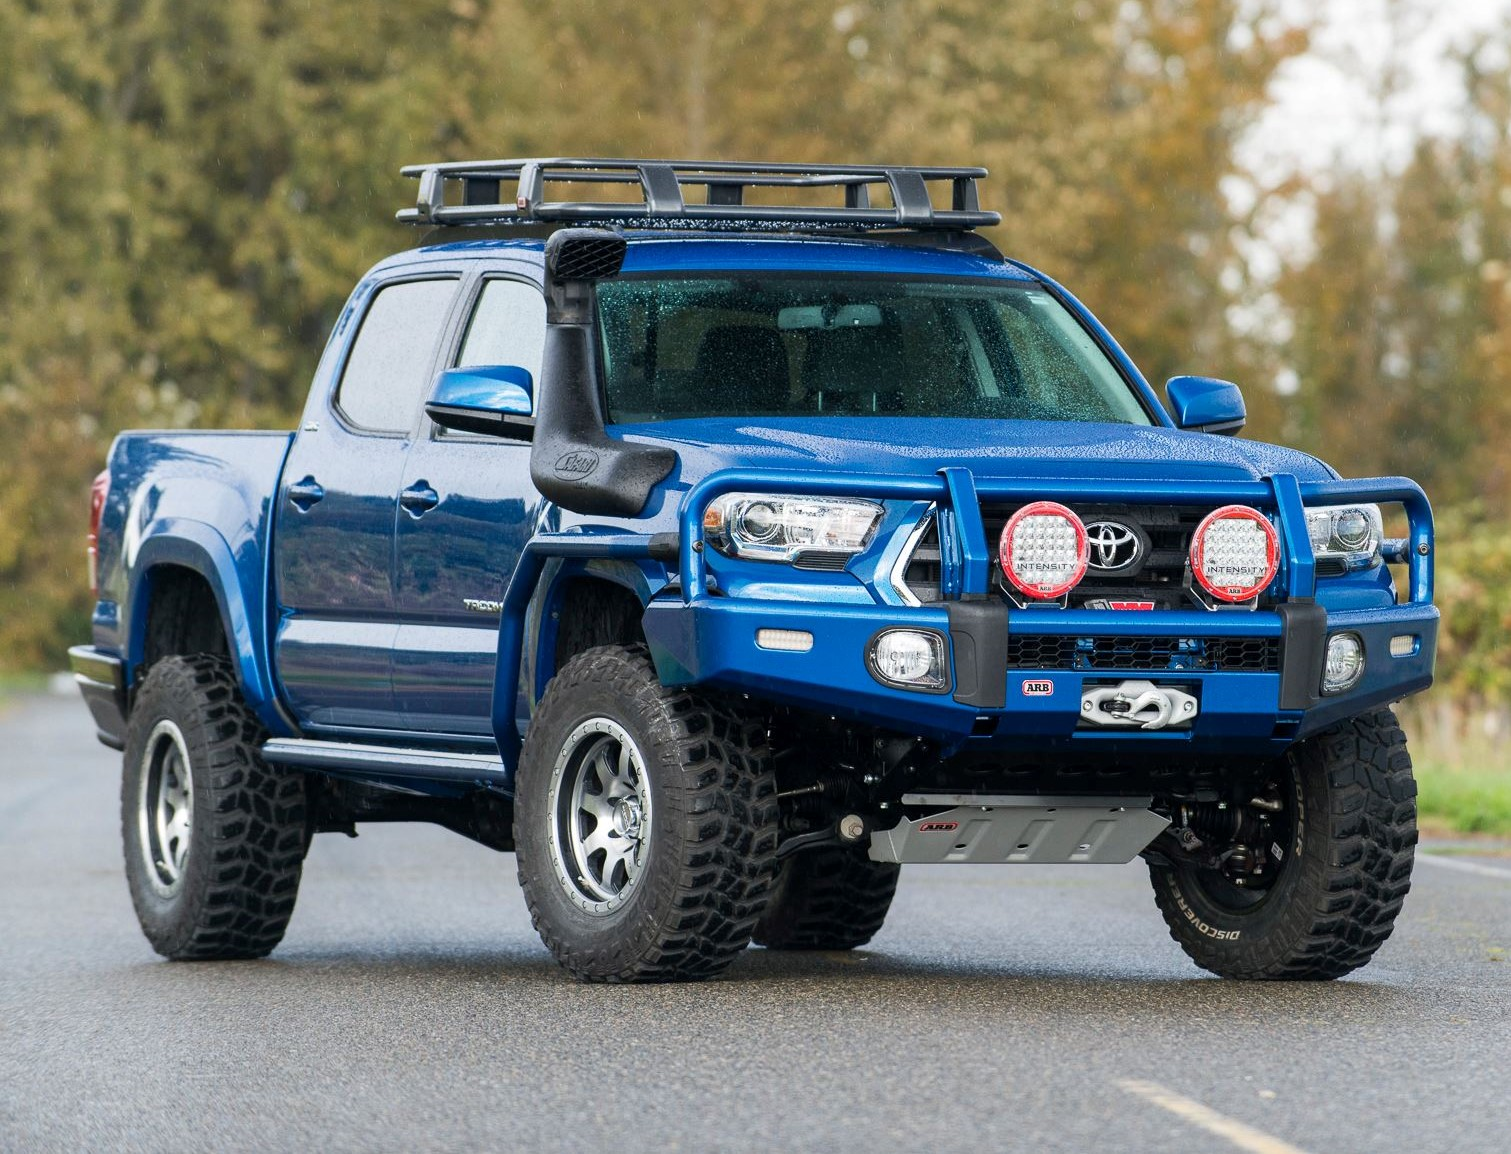 Cruiser Outfitters 2005 Lexus Land Tacoma 3rd Gen Old Man Emu Suspension Fits 2016 Newer Models Click Here For More Information